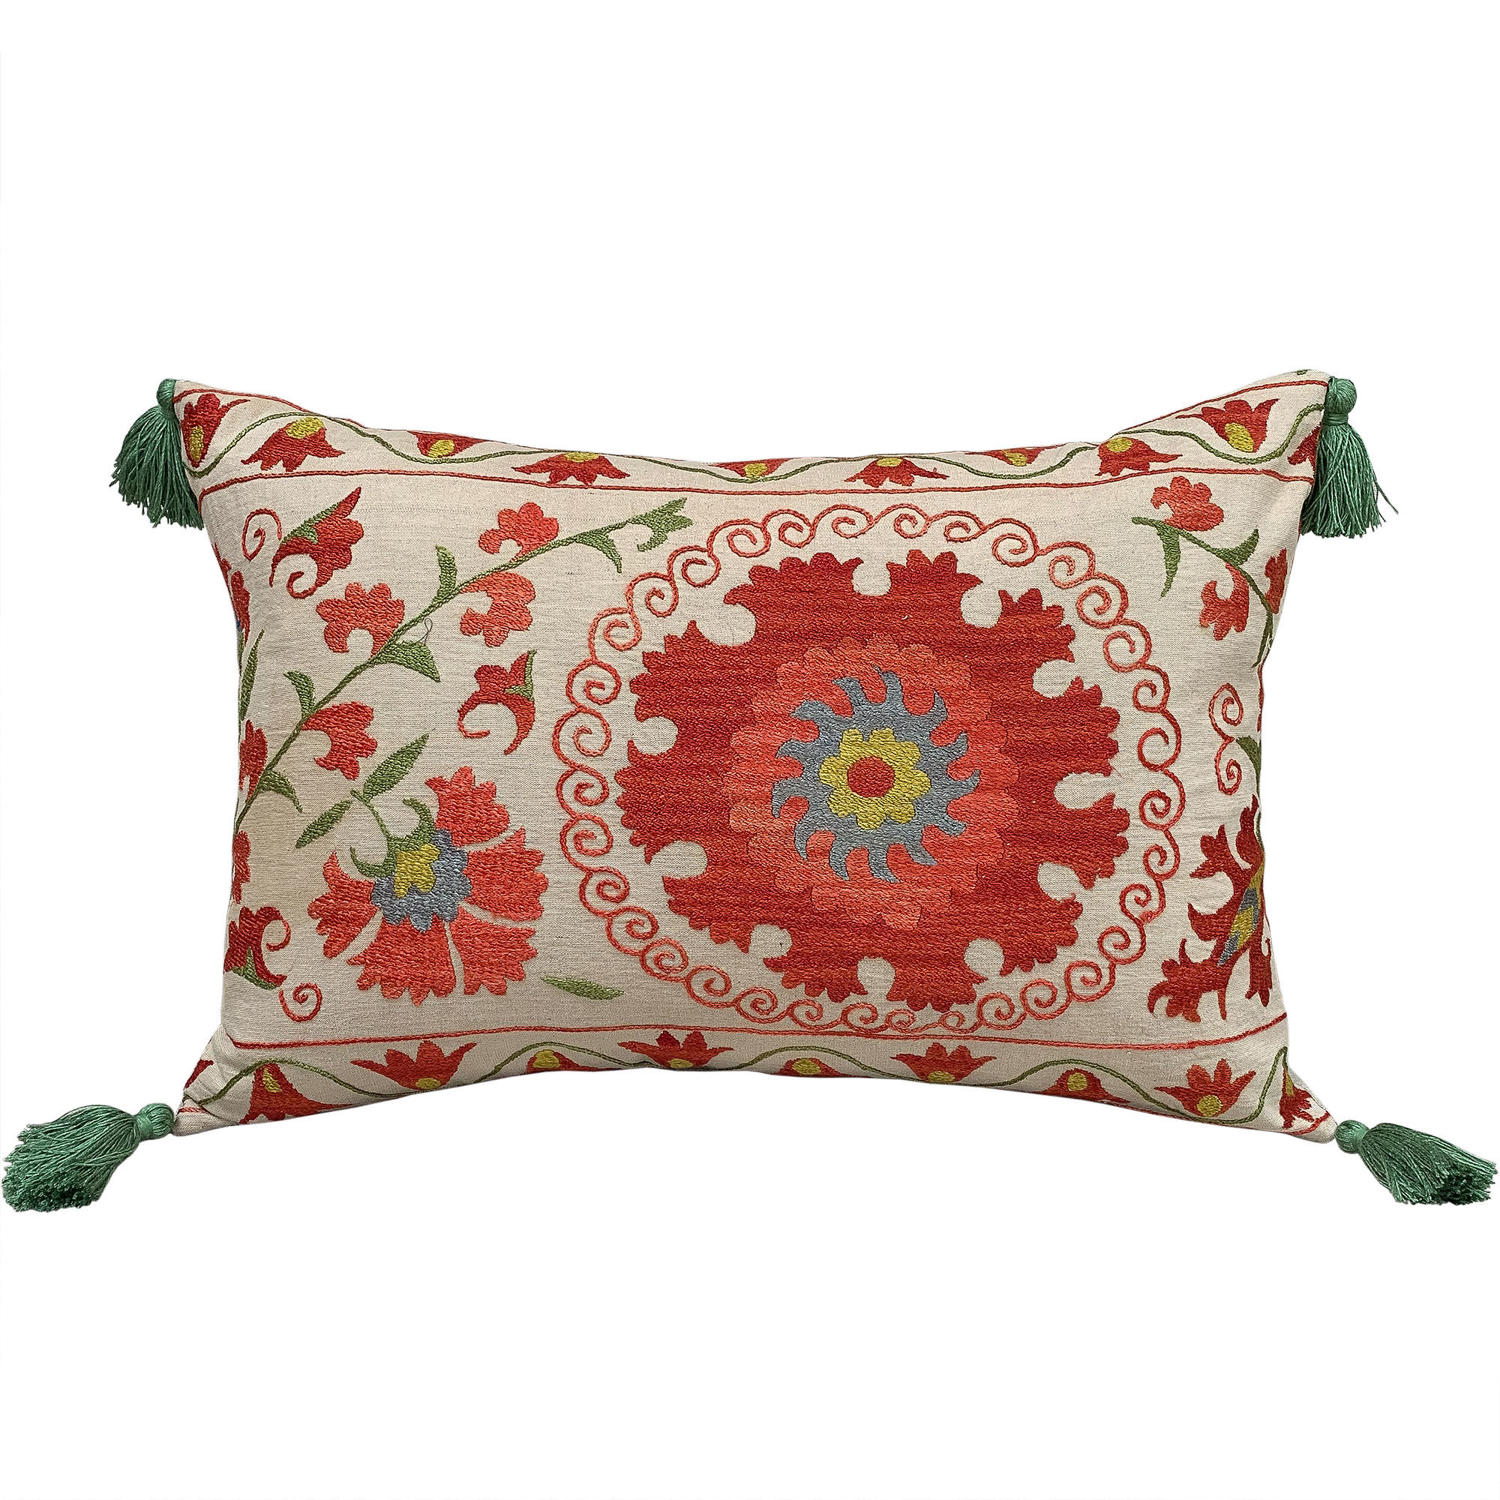 Suzani Cushions with Green Tassels